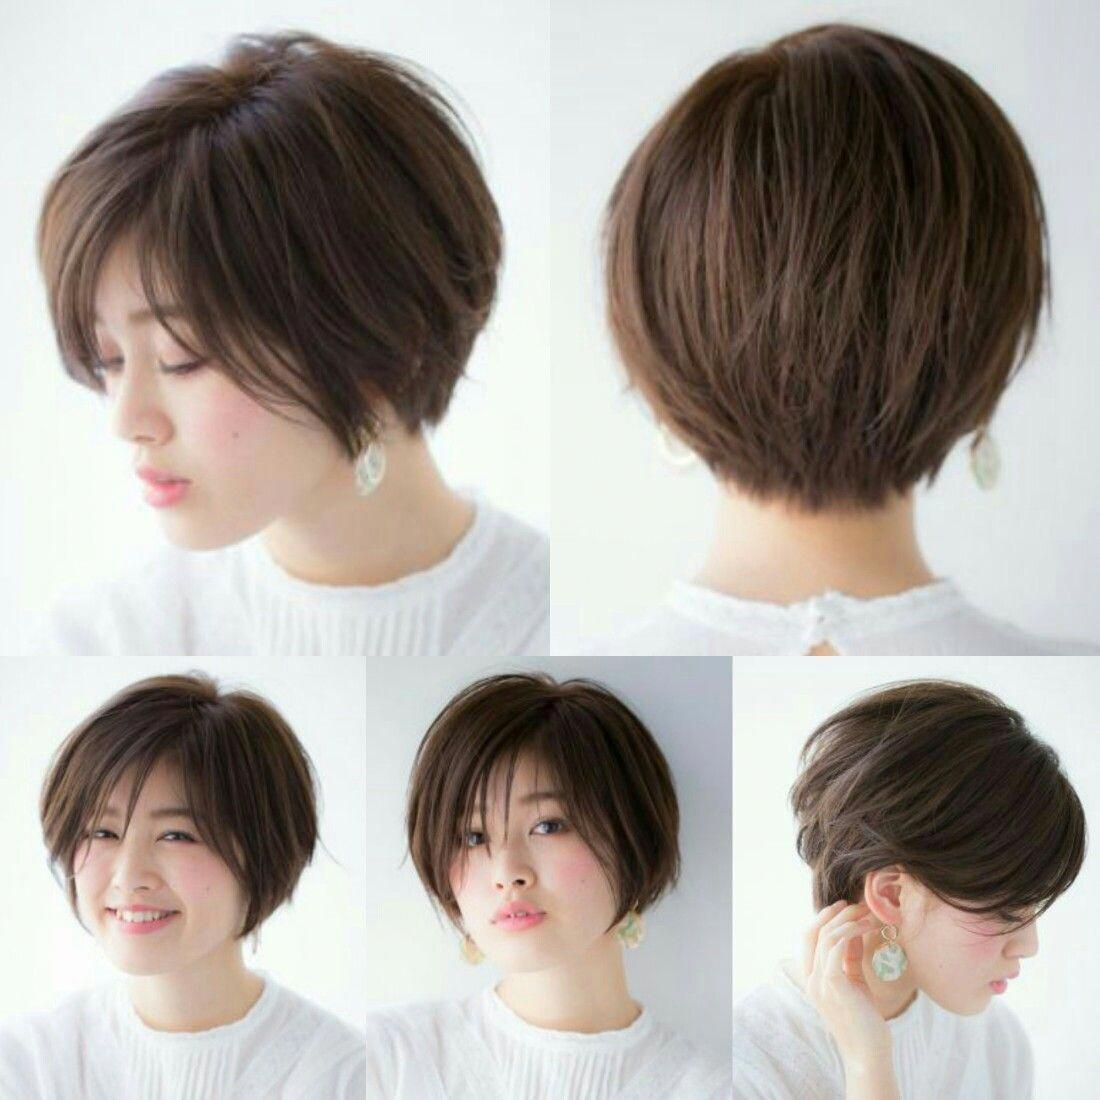 Asian Japanese Short Bob Haircut Bob Pixie Crop Shortfallhairstyles Asian Short Hair Short Hair Haircuts Short Hair Styles For Round Faces